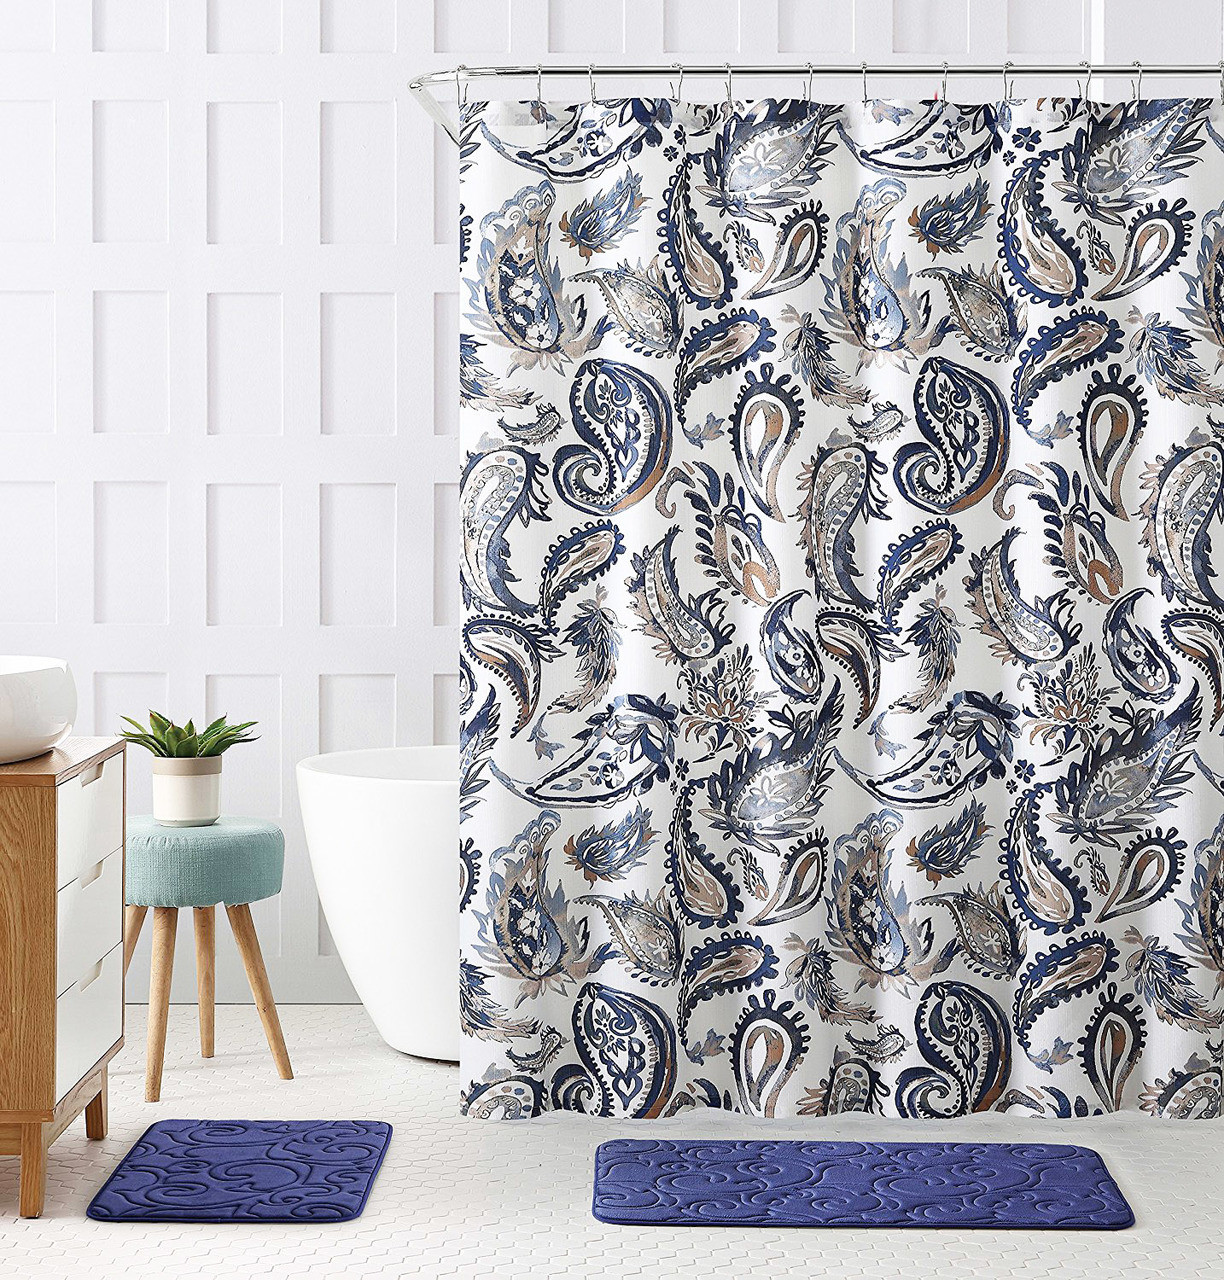 Decorative Navy Blue Gold Fabric Shower Curtain Watercolor Floral Paisley Design 72 X 72 Inch